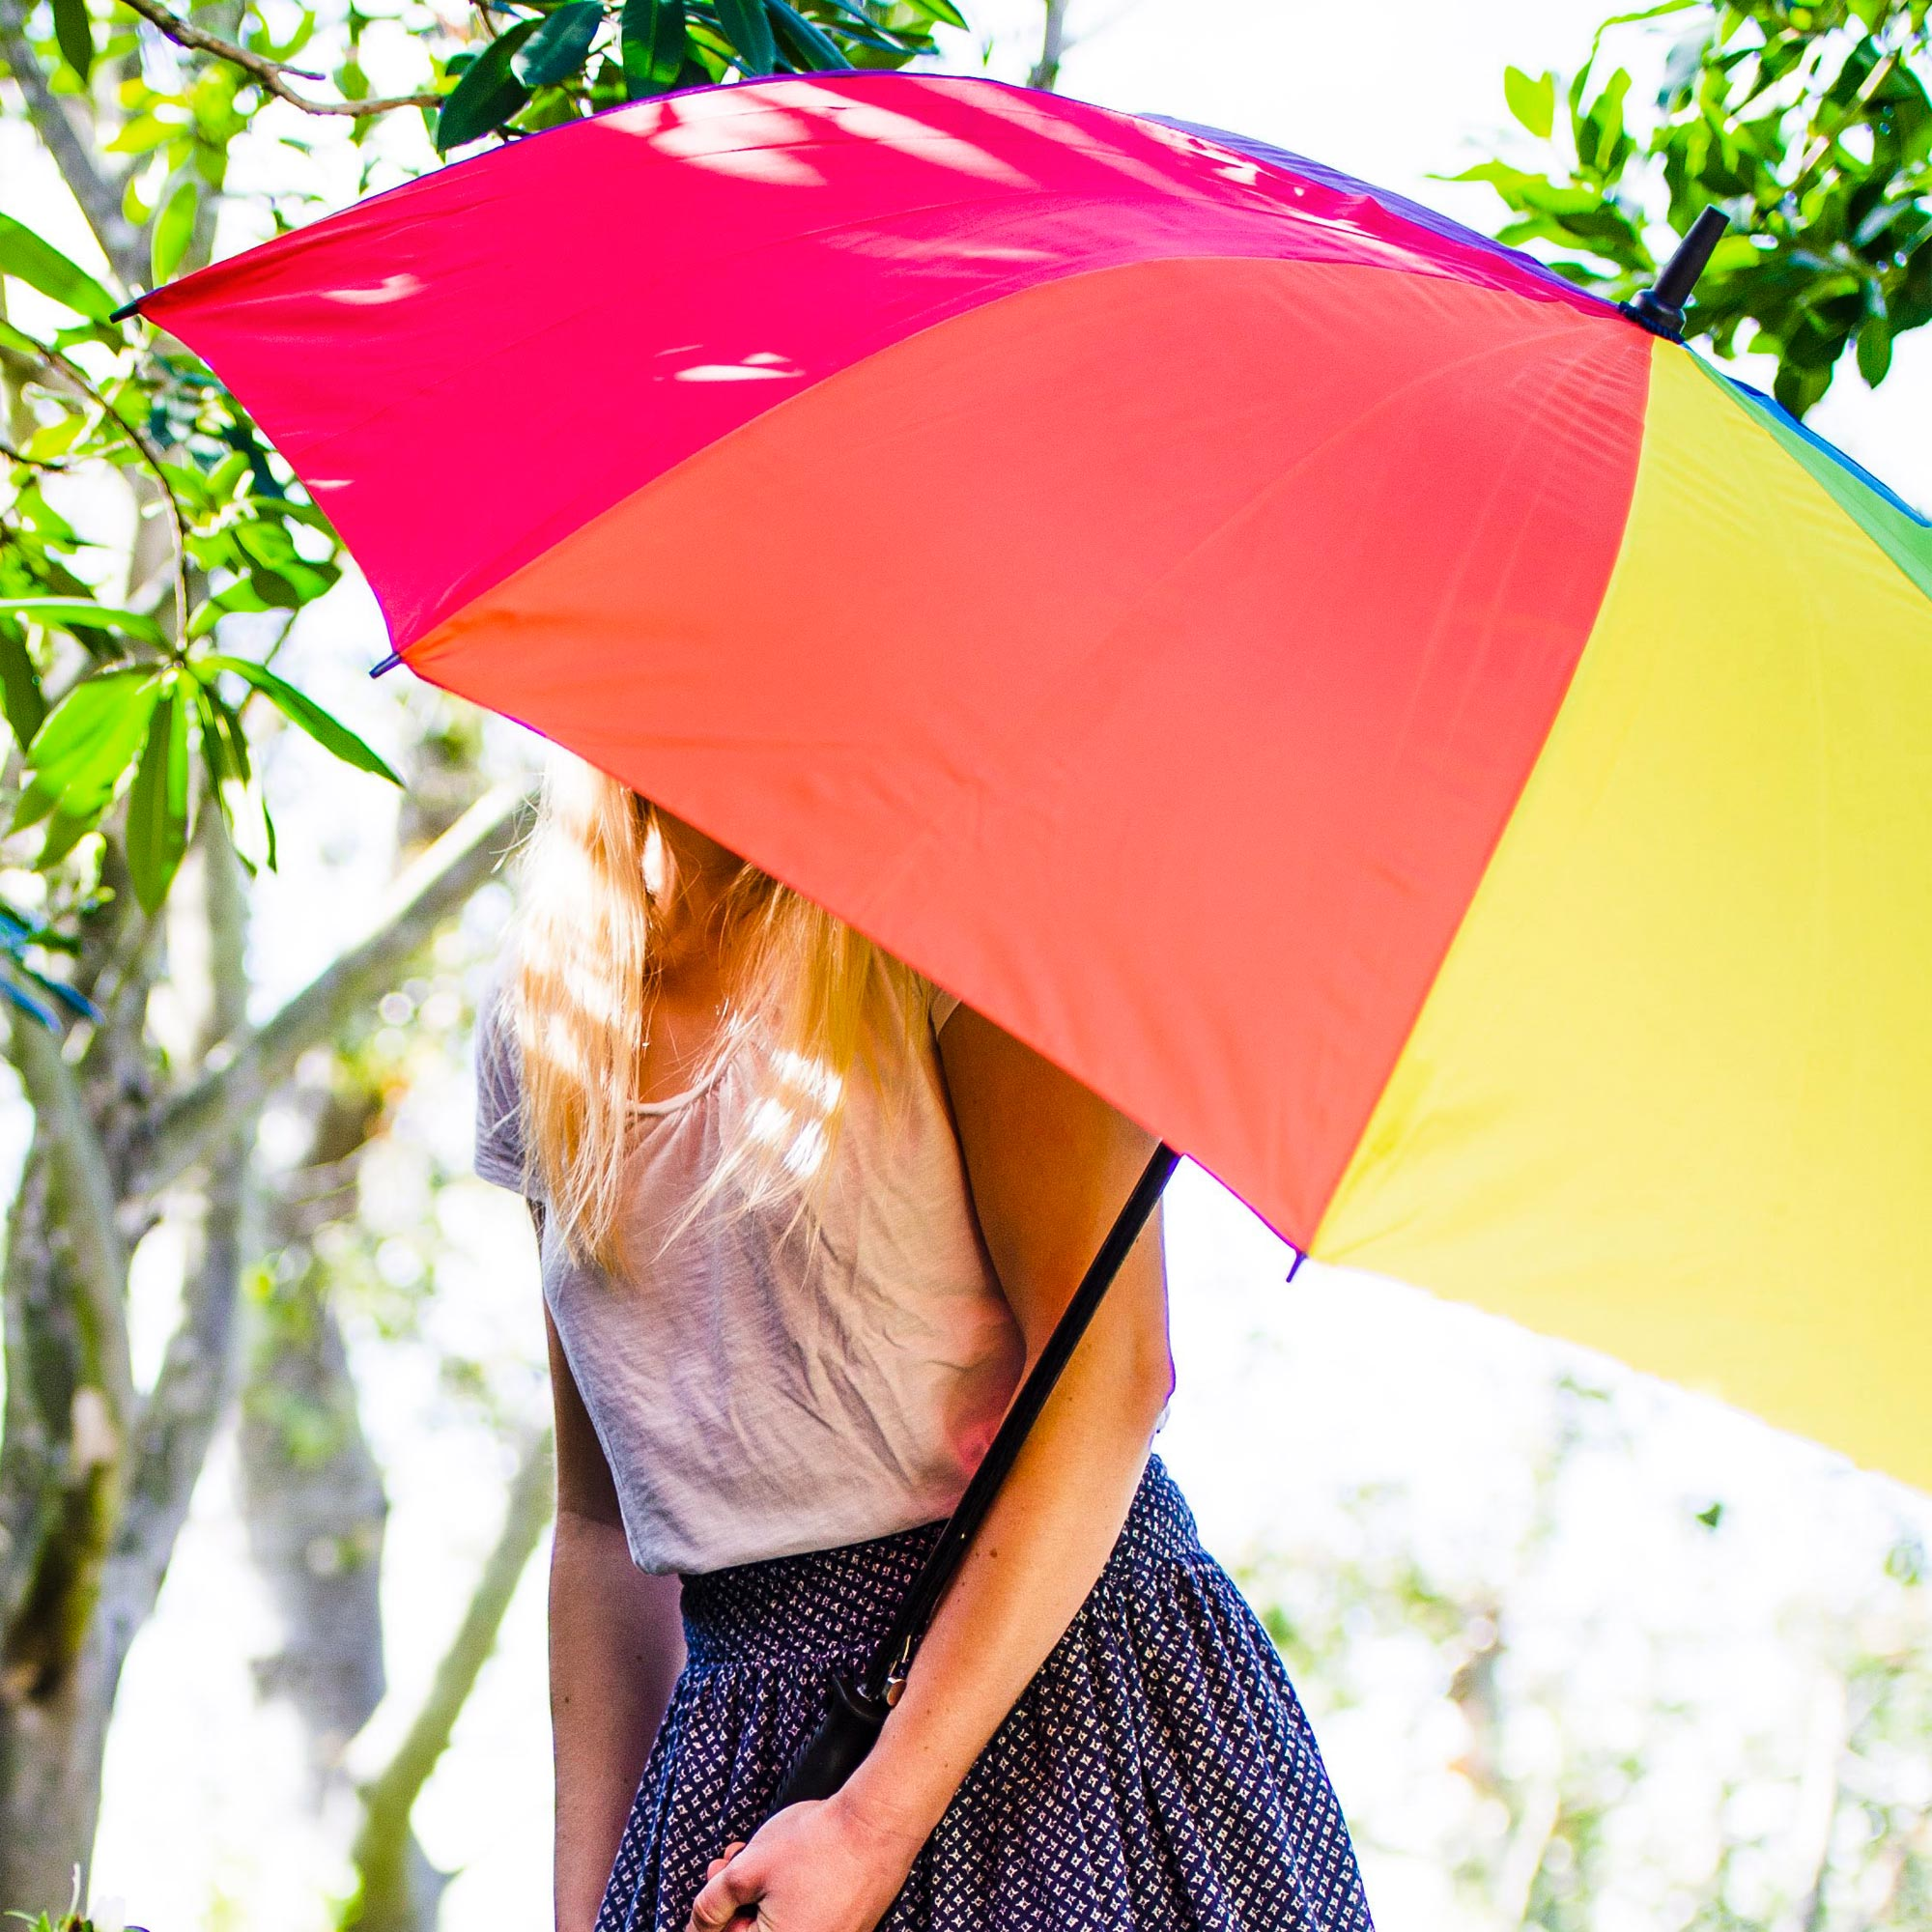 Female model holding rainbow golf umbrella over her face to protect her from the sun